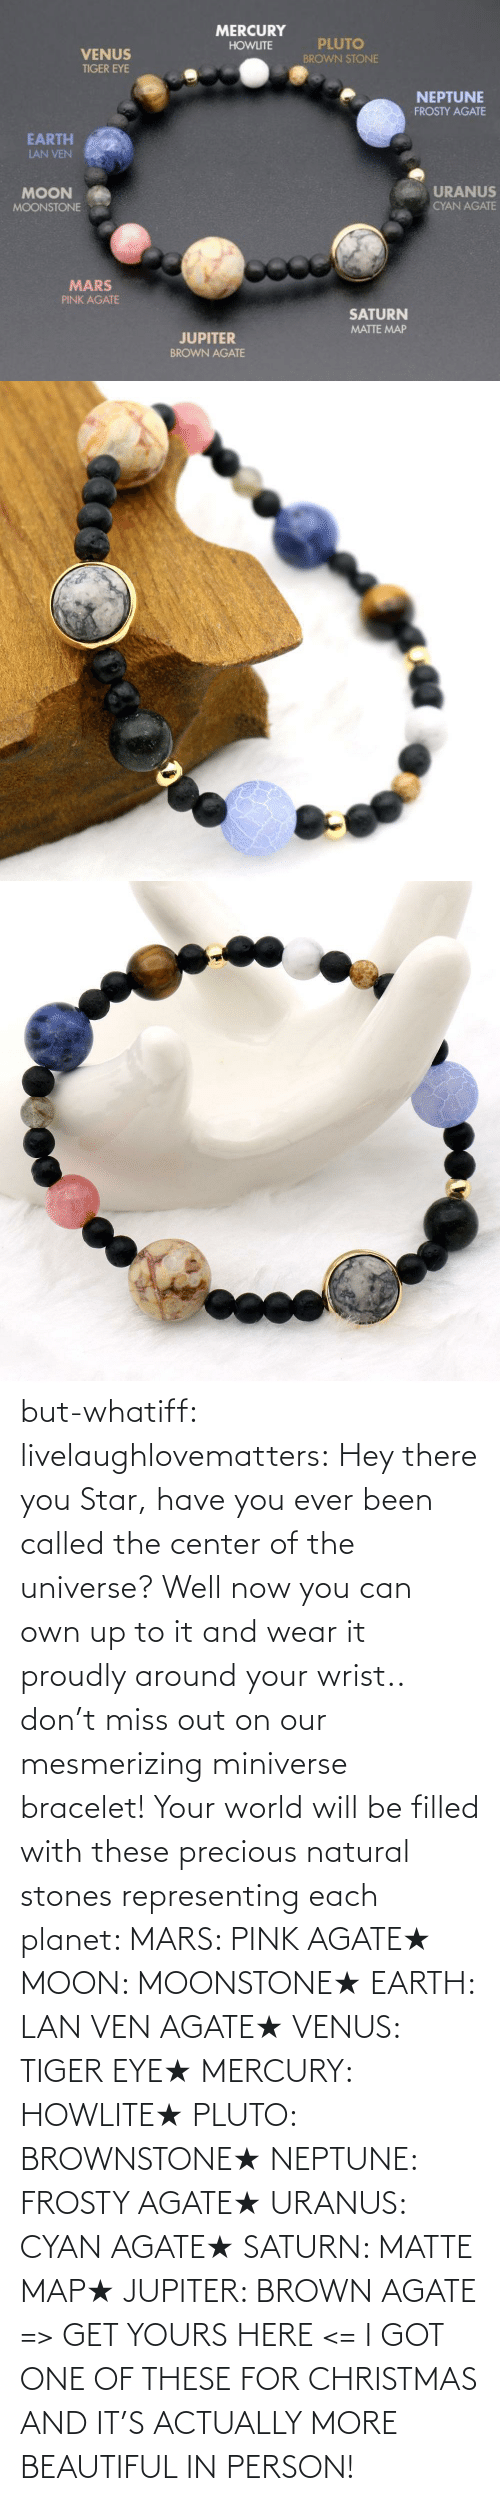 person: but-whatiff:  livelaughlovematters:  Hey there you Star, have you ever been called the center of the universe? Well now you can own up to it and wear it proudly around your wrist.. don't miss out on our mesmerizing miniverse bracelet! Your world will be filled with these precious natural stones representing each planet:  MARS: PINK AGATE★ MOON: MOONSTONE★ EARTH: LAN VEN AGATE★ VENUS: TIGER EYE★ MERCURY: HOWLITE★ PLUTO: BROWNSTONE★ NEPTUNE: FROSTY AGATE★ URANUS: CYAN AGATE★ SATURN: MATTE MAP★ JUPITER: BROWN AGATE => GET YOURS HERE <=  I GOT ONE OF THESE FOR CHRISTMAS AND IT'S ACTUALLY MORE BEAUTIFUL IN PERSON!